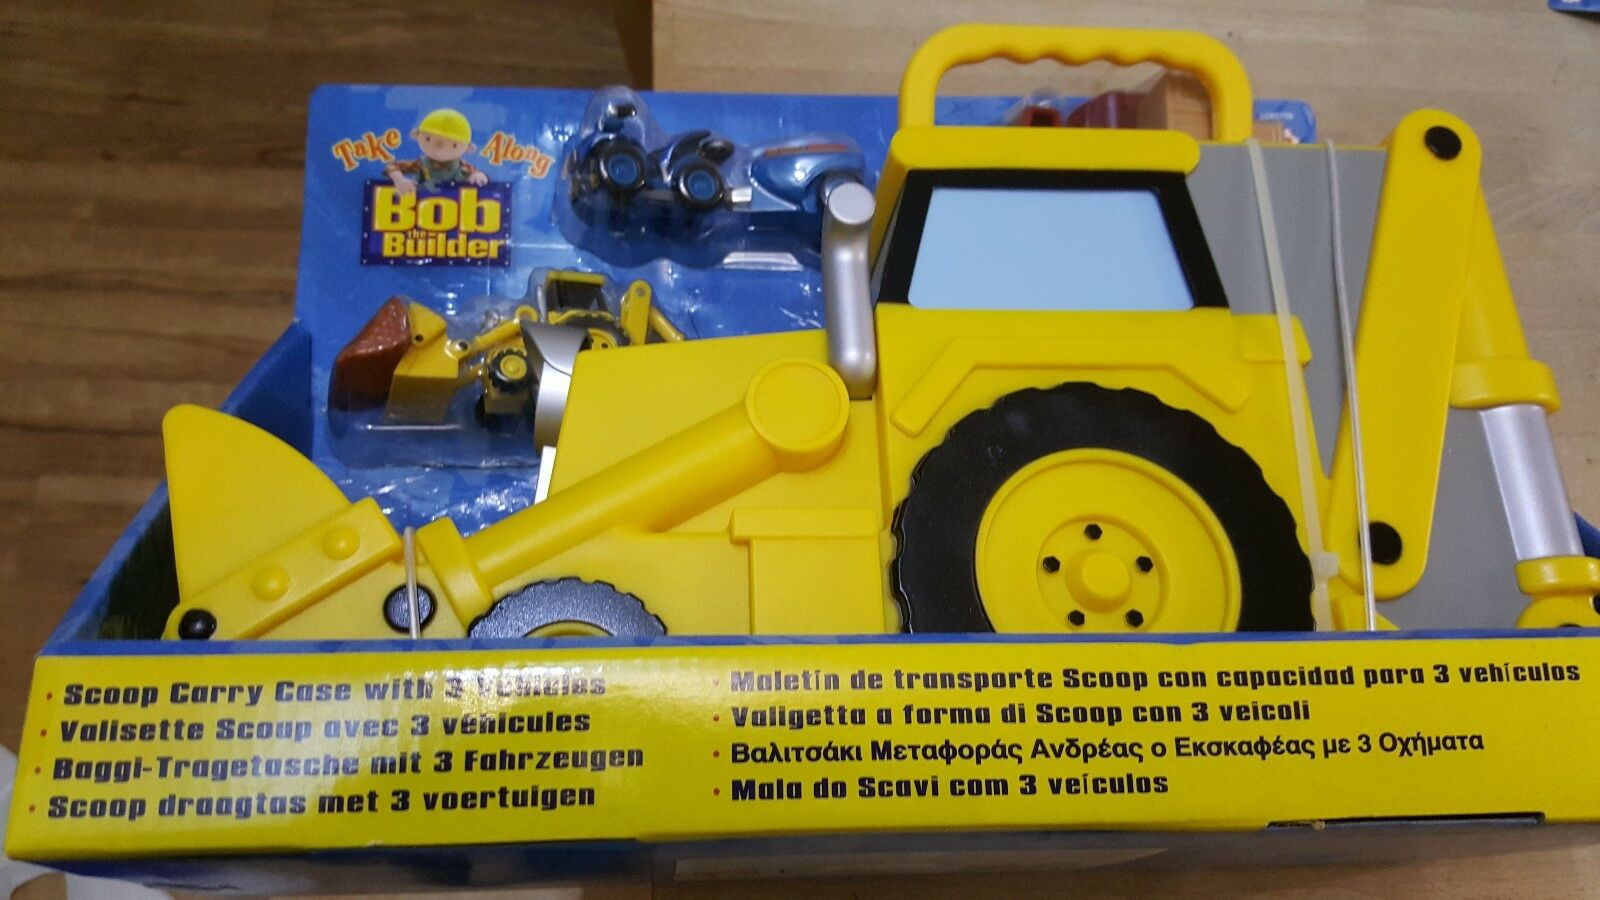 NEW BOB THE BUILDER CARRY CASE TAKE A LONG SCOOP WITH 3 DIE CAST VEHICLES